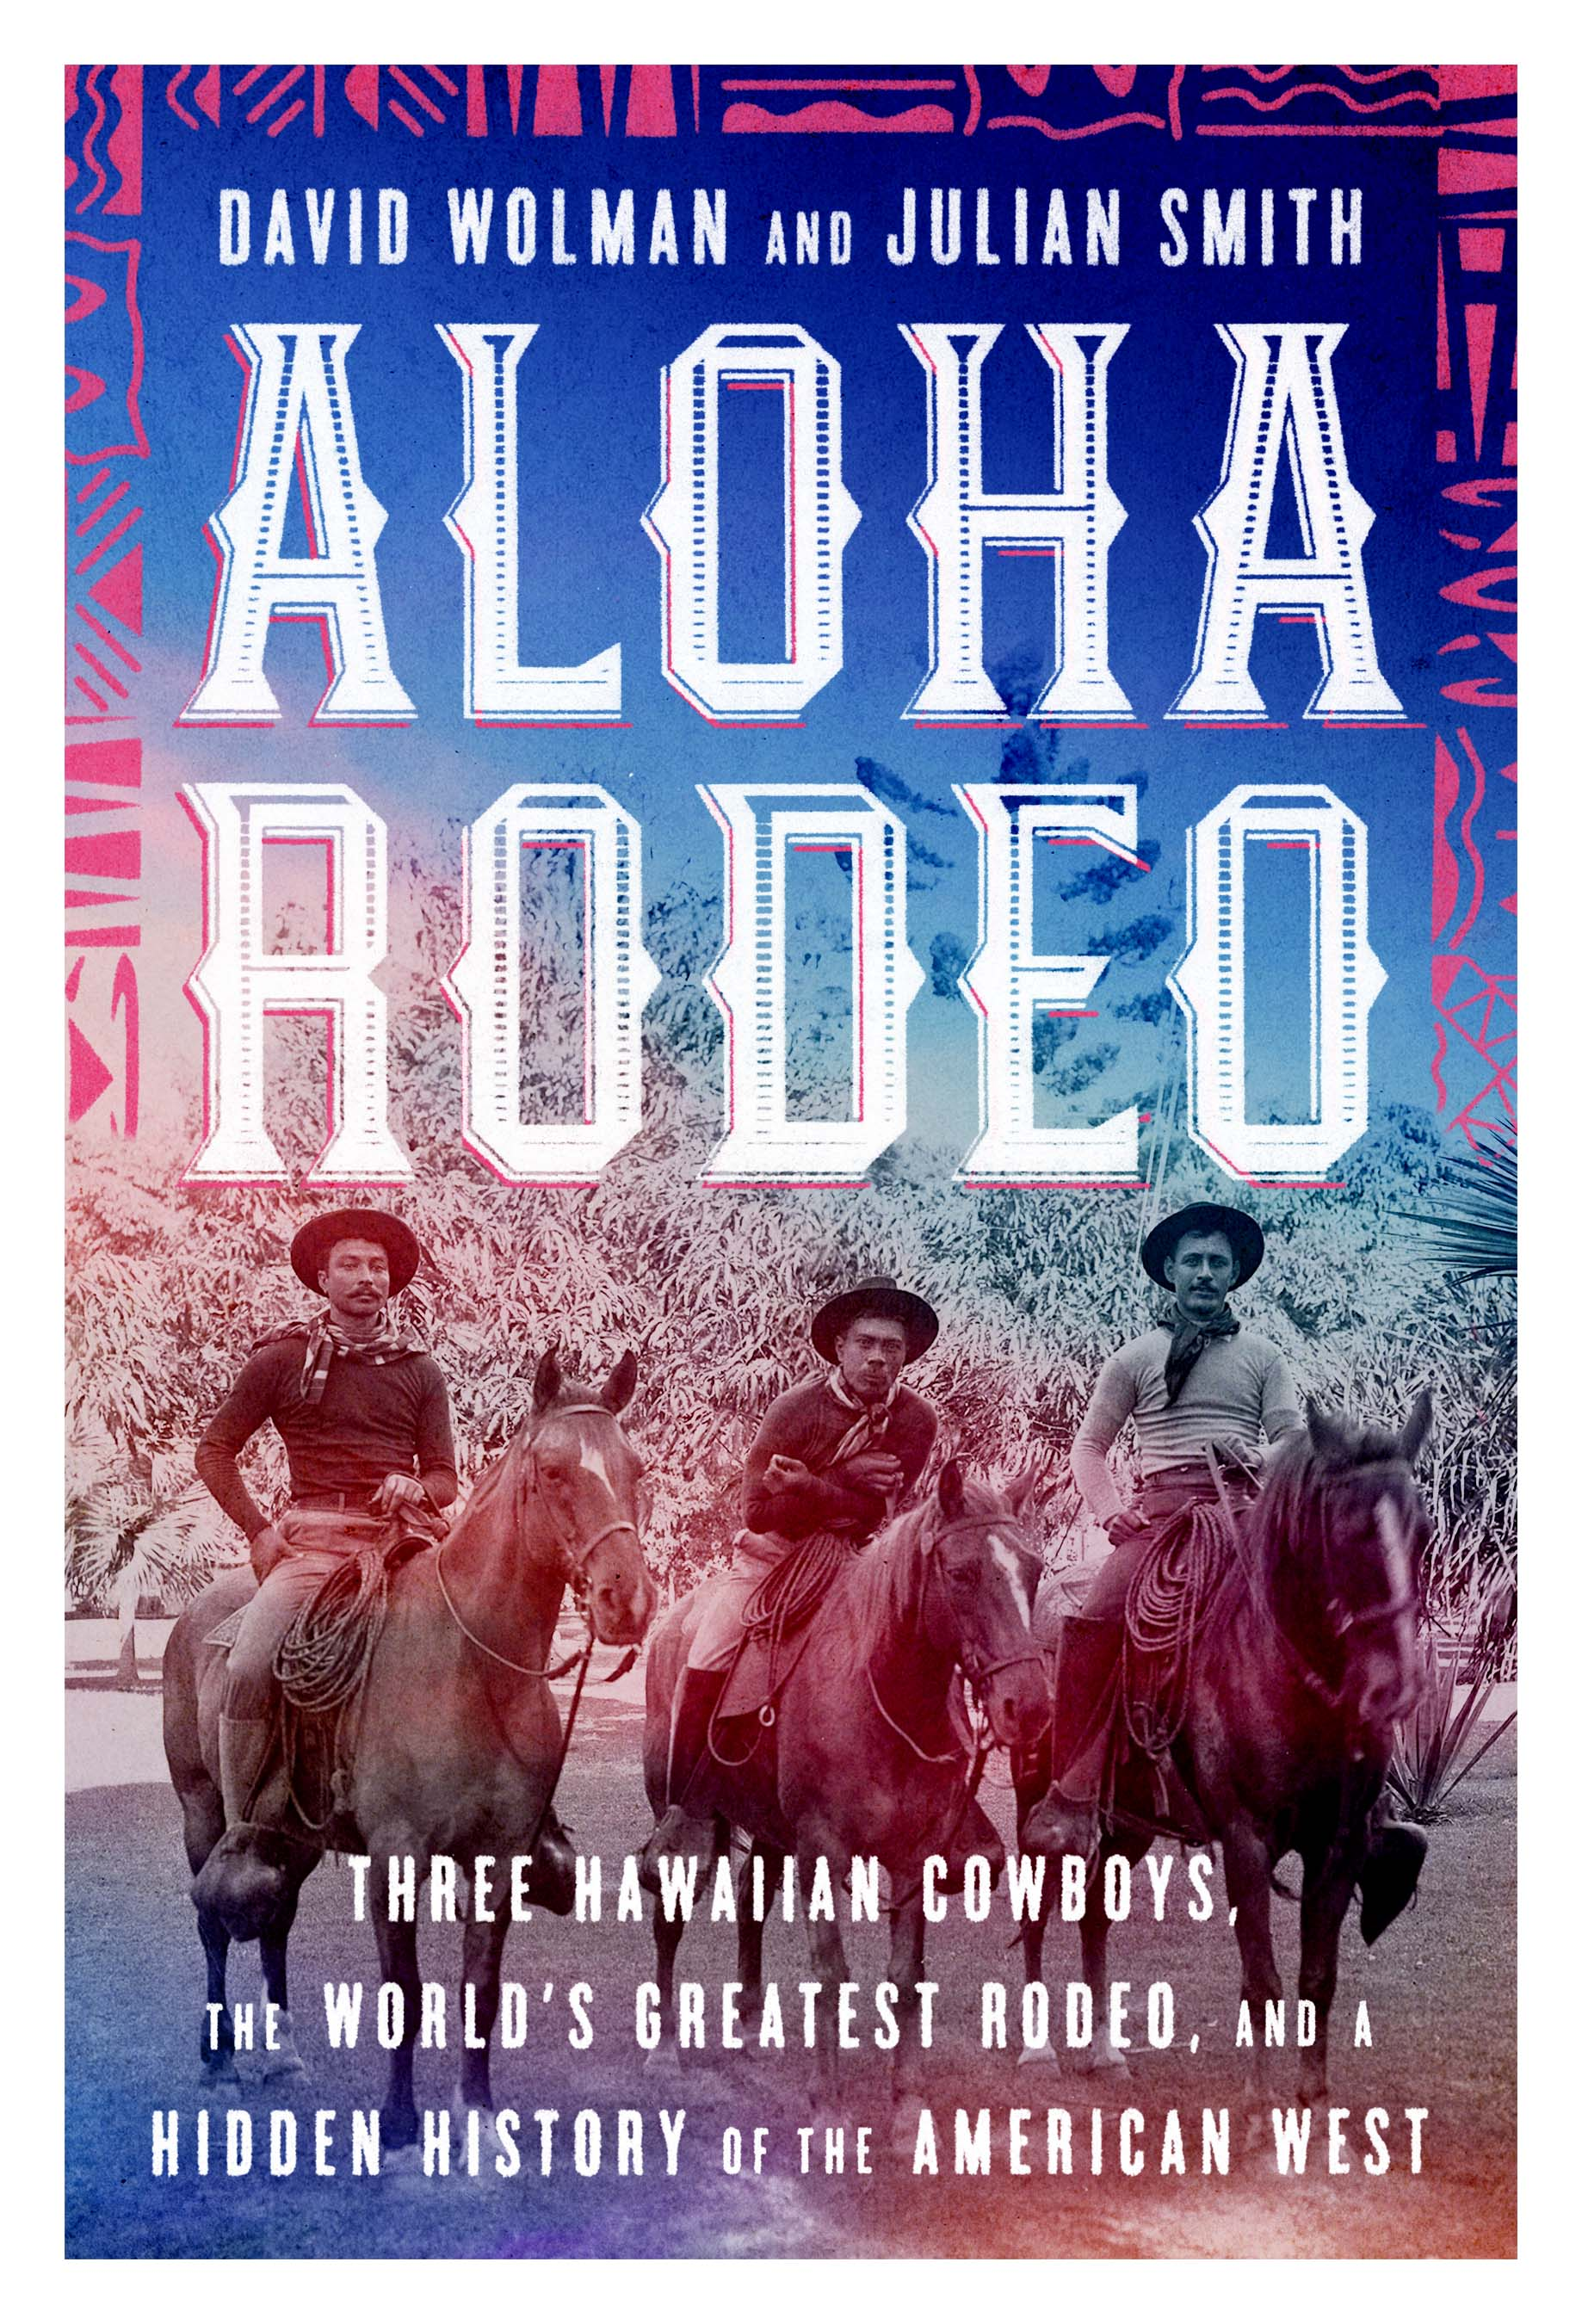 - In August 1908, three unknown riders arrived in Cheyenne, Wyoming, their hats adorned with wildflowers, to compete in the world's greatest rodeo. Steer-roping virtuoso Ikua Purdy and his cousins Jack Low and Archie Ka'au'a had travelled 3,000 miles from Hawaii, of all places, to test themselves against the toughest riders in the West.Dismissed by whites, who considered themselves the only true cowboys, the native Hawaiians would astonish the country, returning home champions—and American legends. An unforgettable human drama set against the rough-knuckled frontier, Aloha Rodeo unspools the fascinating and little-known true story of the Hawaiian cowboys, or paniolo, whose 1908 adventure upended the conventional history of the American West.